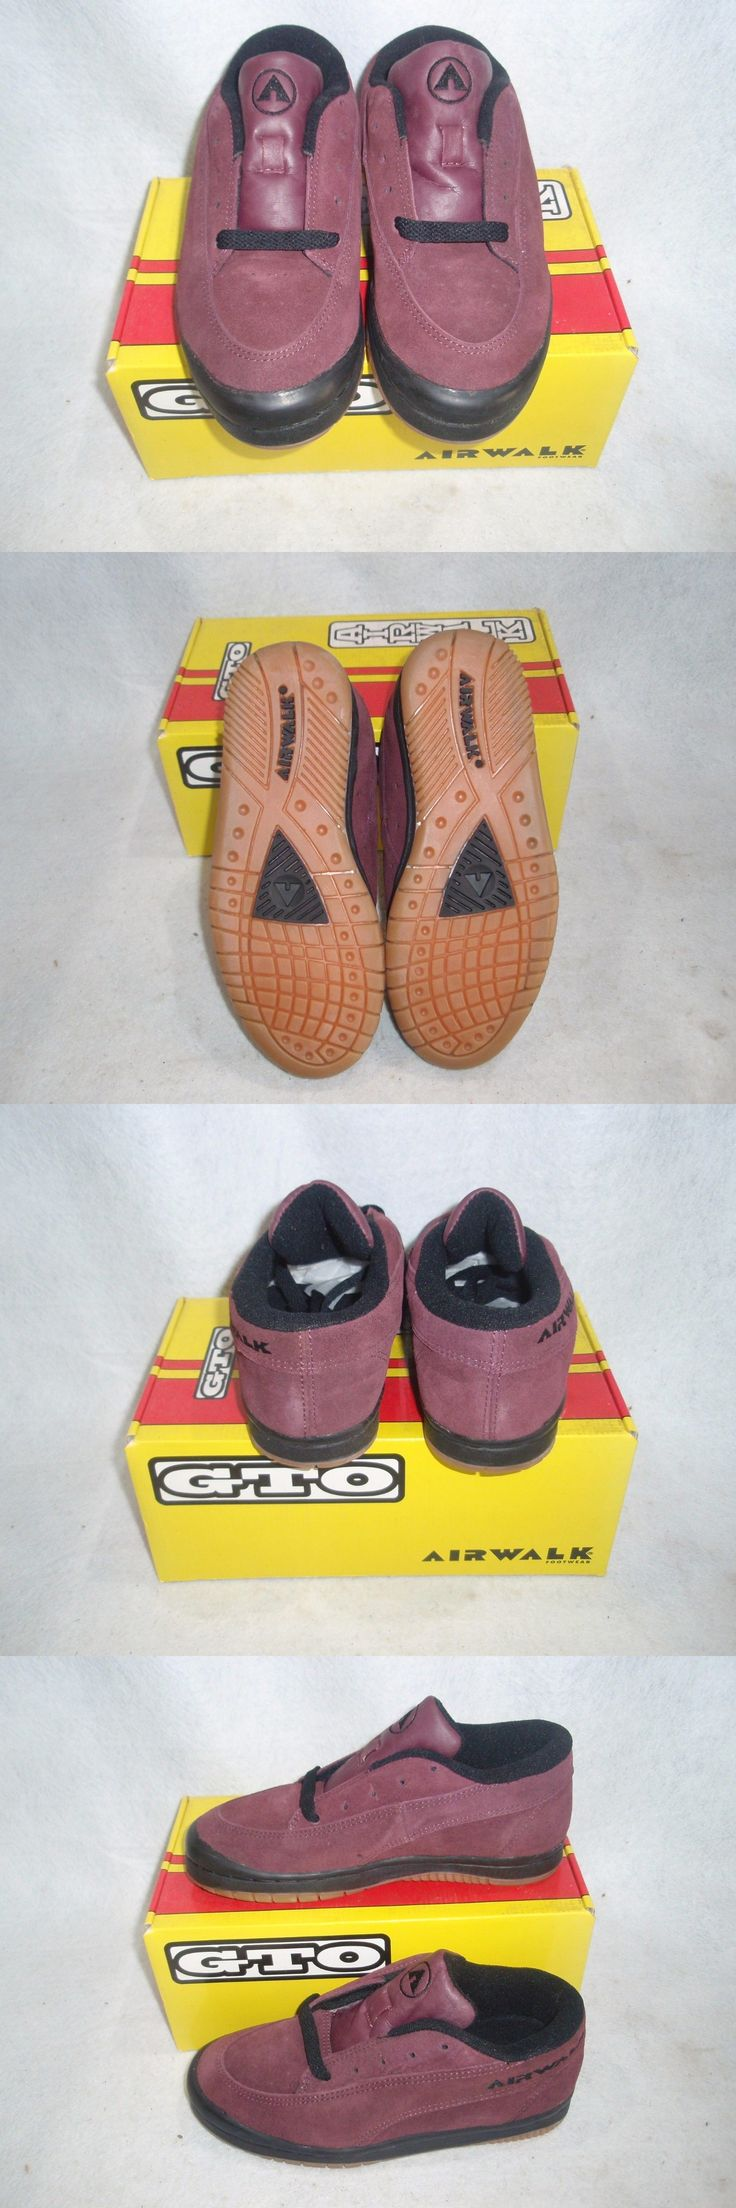 Youth 159072: Nos Vintage 1990S Airwalk Gto Footwear Guys Size 4.5 Color - Wine Sk8 Bmx Shoes BUY IT NOW ONLY: $49.99